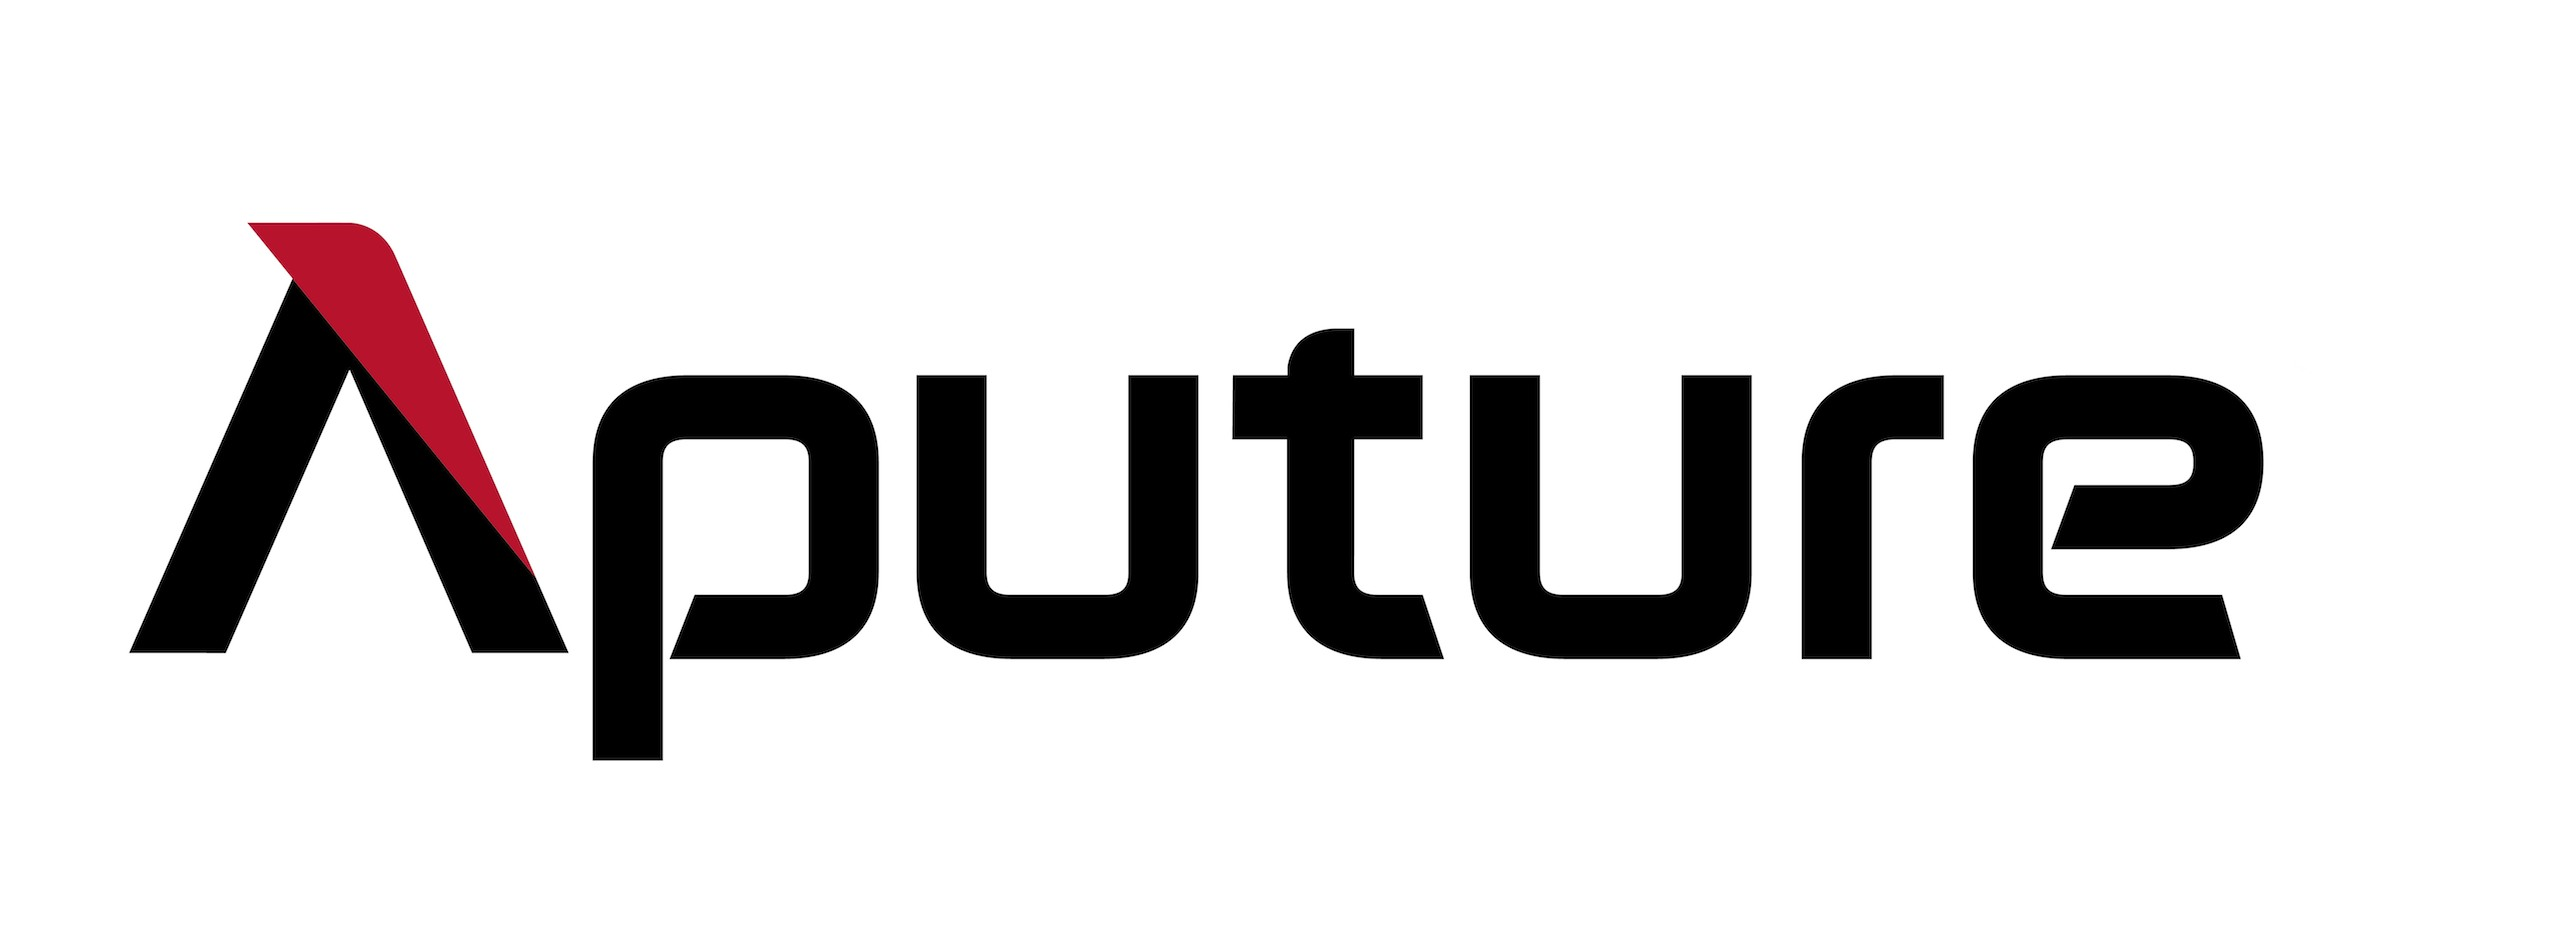 The Aputure Company Logo